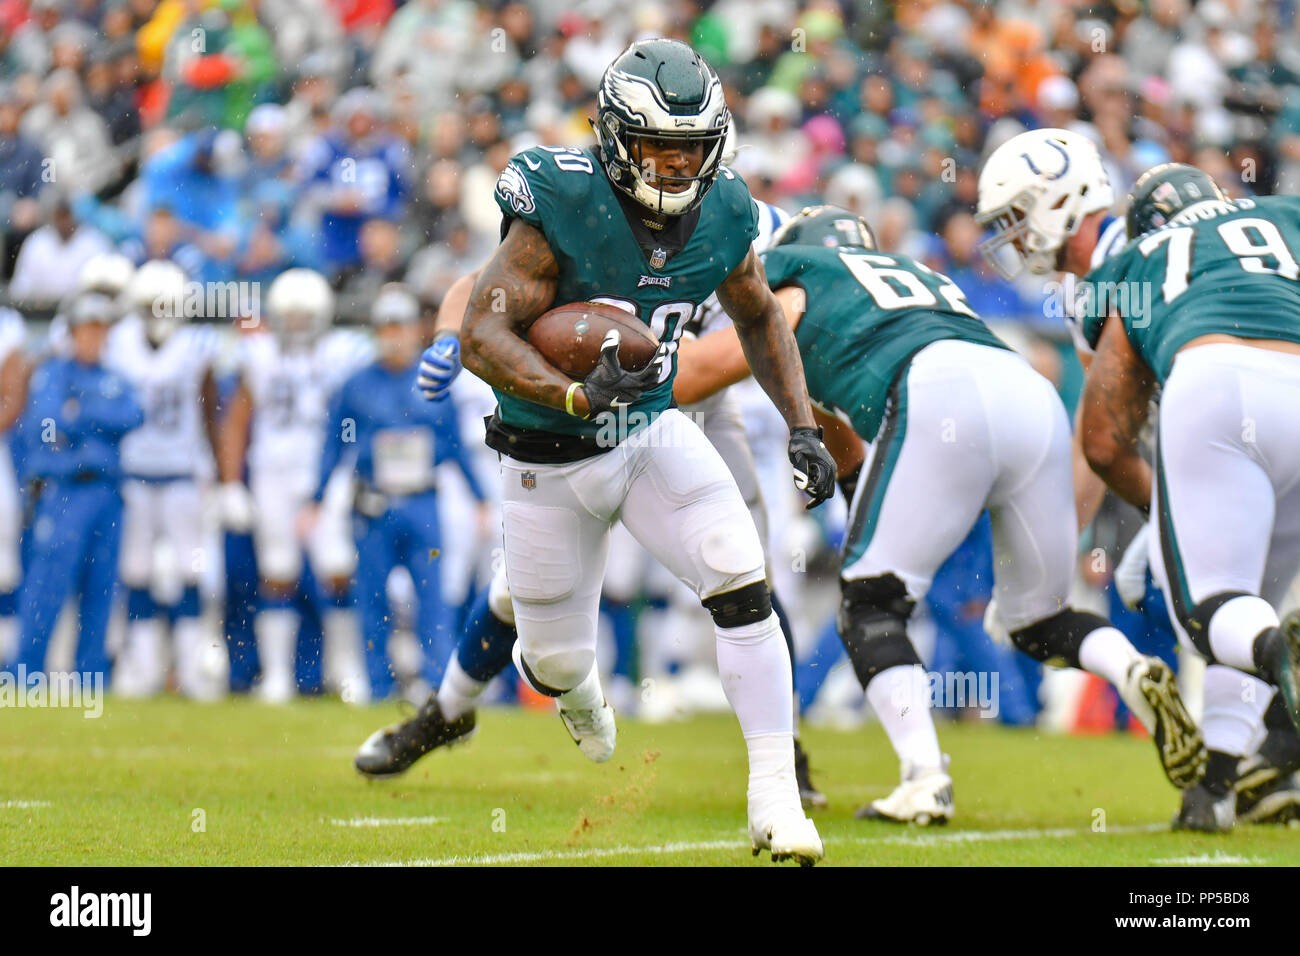 Philadelphia, Pennsylvania, USA. 23rd Sep, 2018. Corey Clement (30) of the Philadelphia Eagles carries the ball during a game against the Indianapolis Colts at Lincoln Financial Field in Philadelphia, Pennsylvania. Gregory Vasil/Cal Sport Media/Alamy Live News - Stock Image